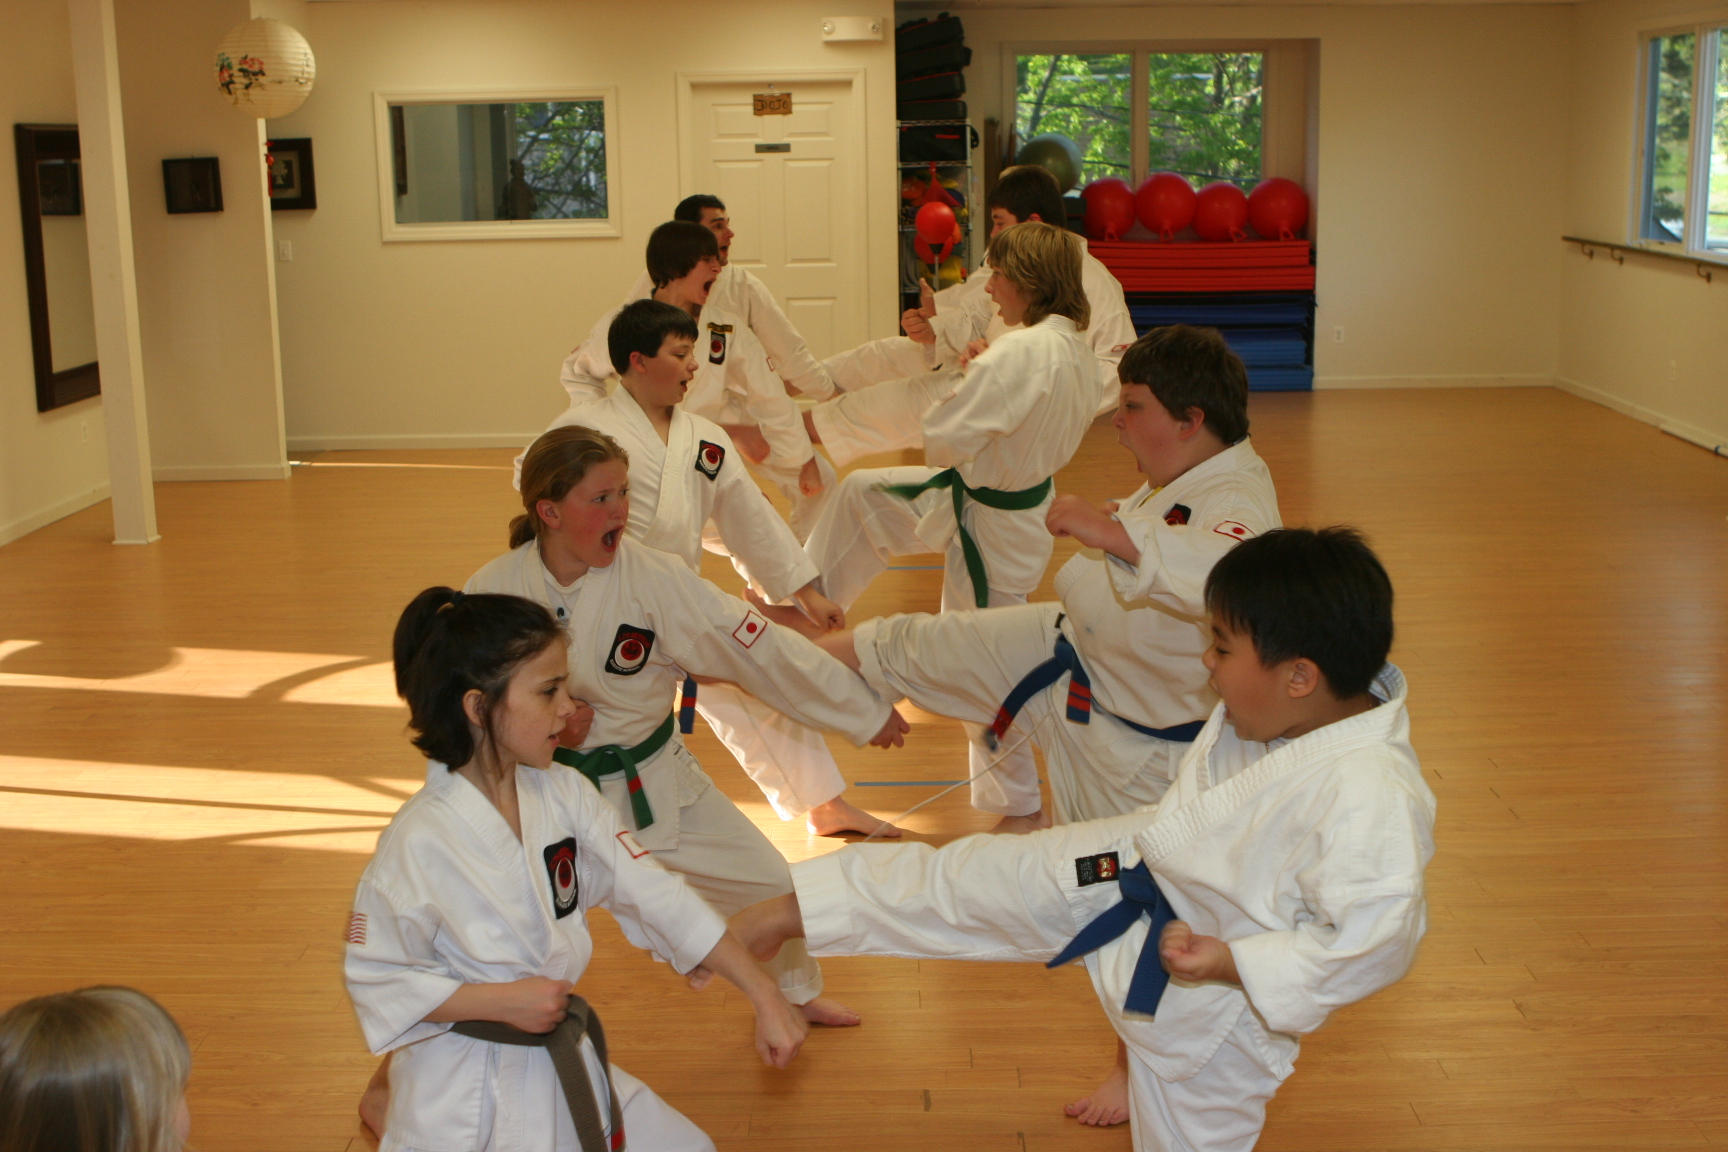 LT's Shotokan Karate